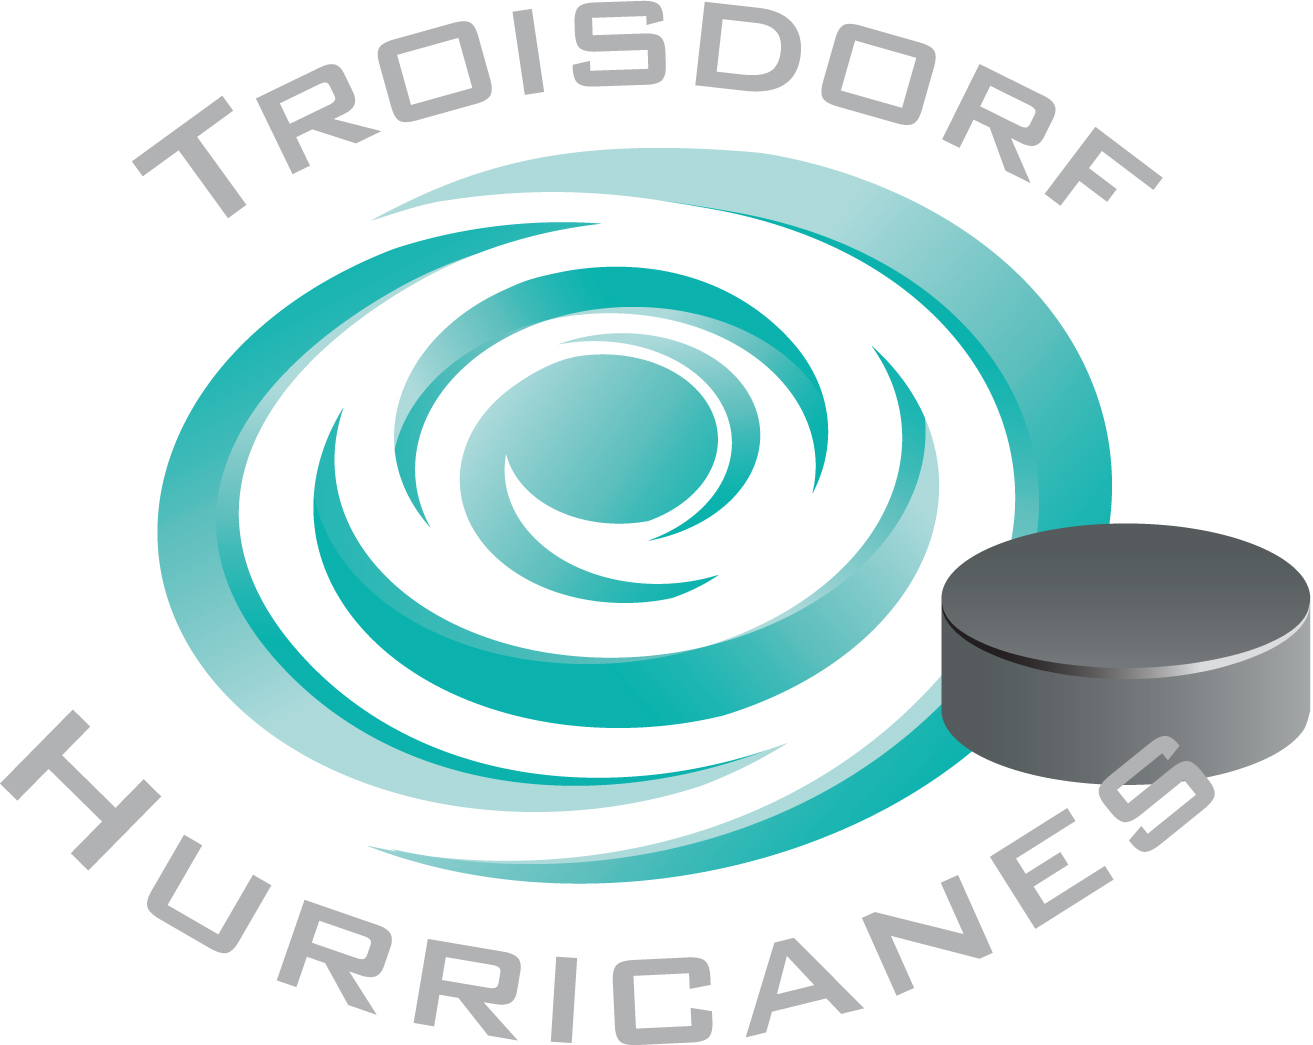 ESC Troisdorf Hurricanes e.V.